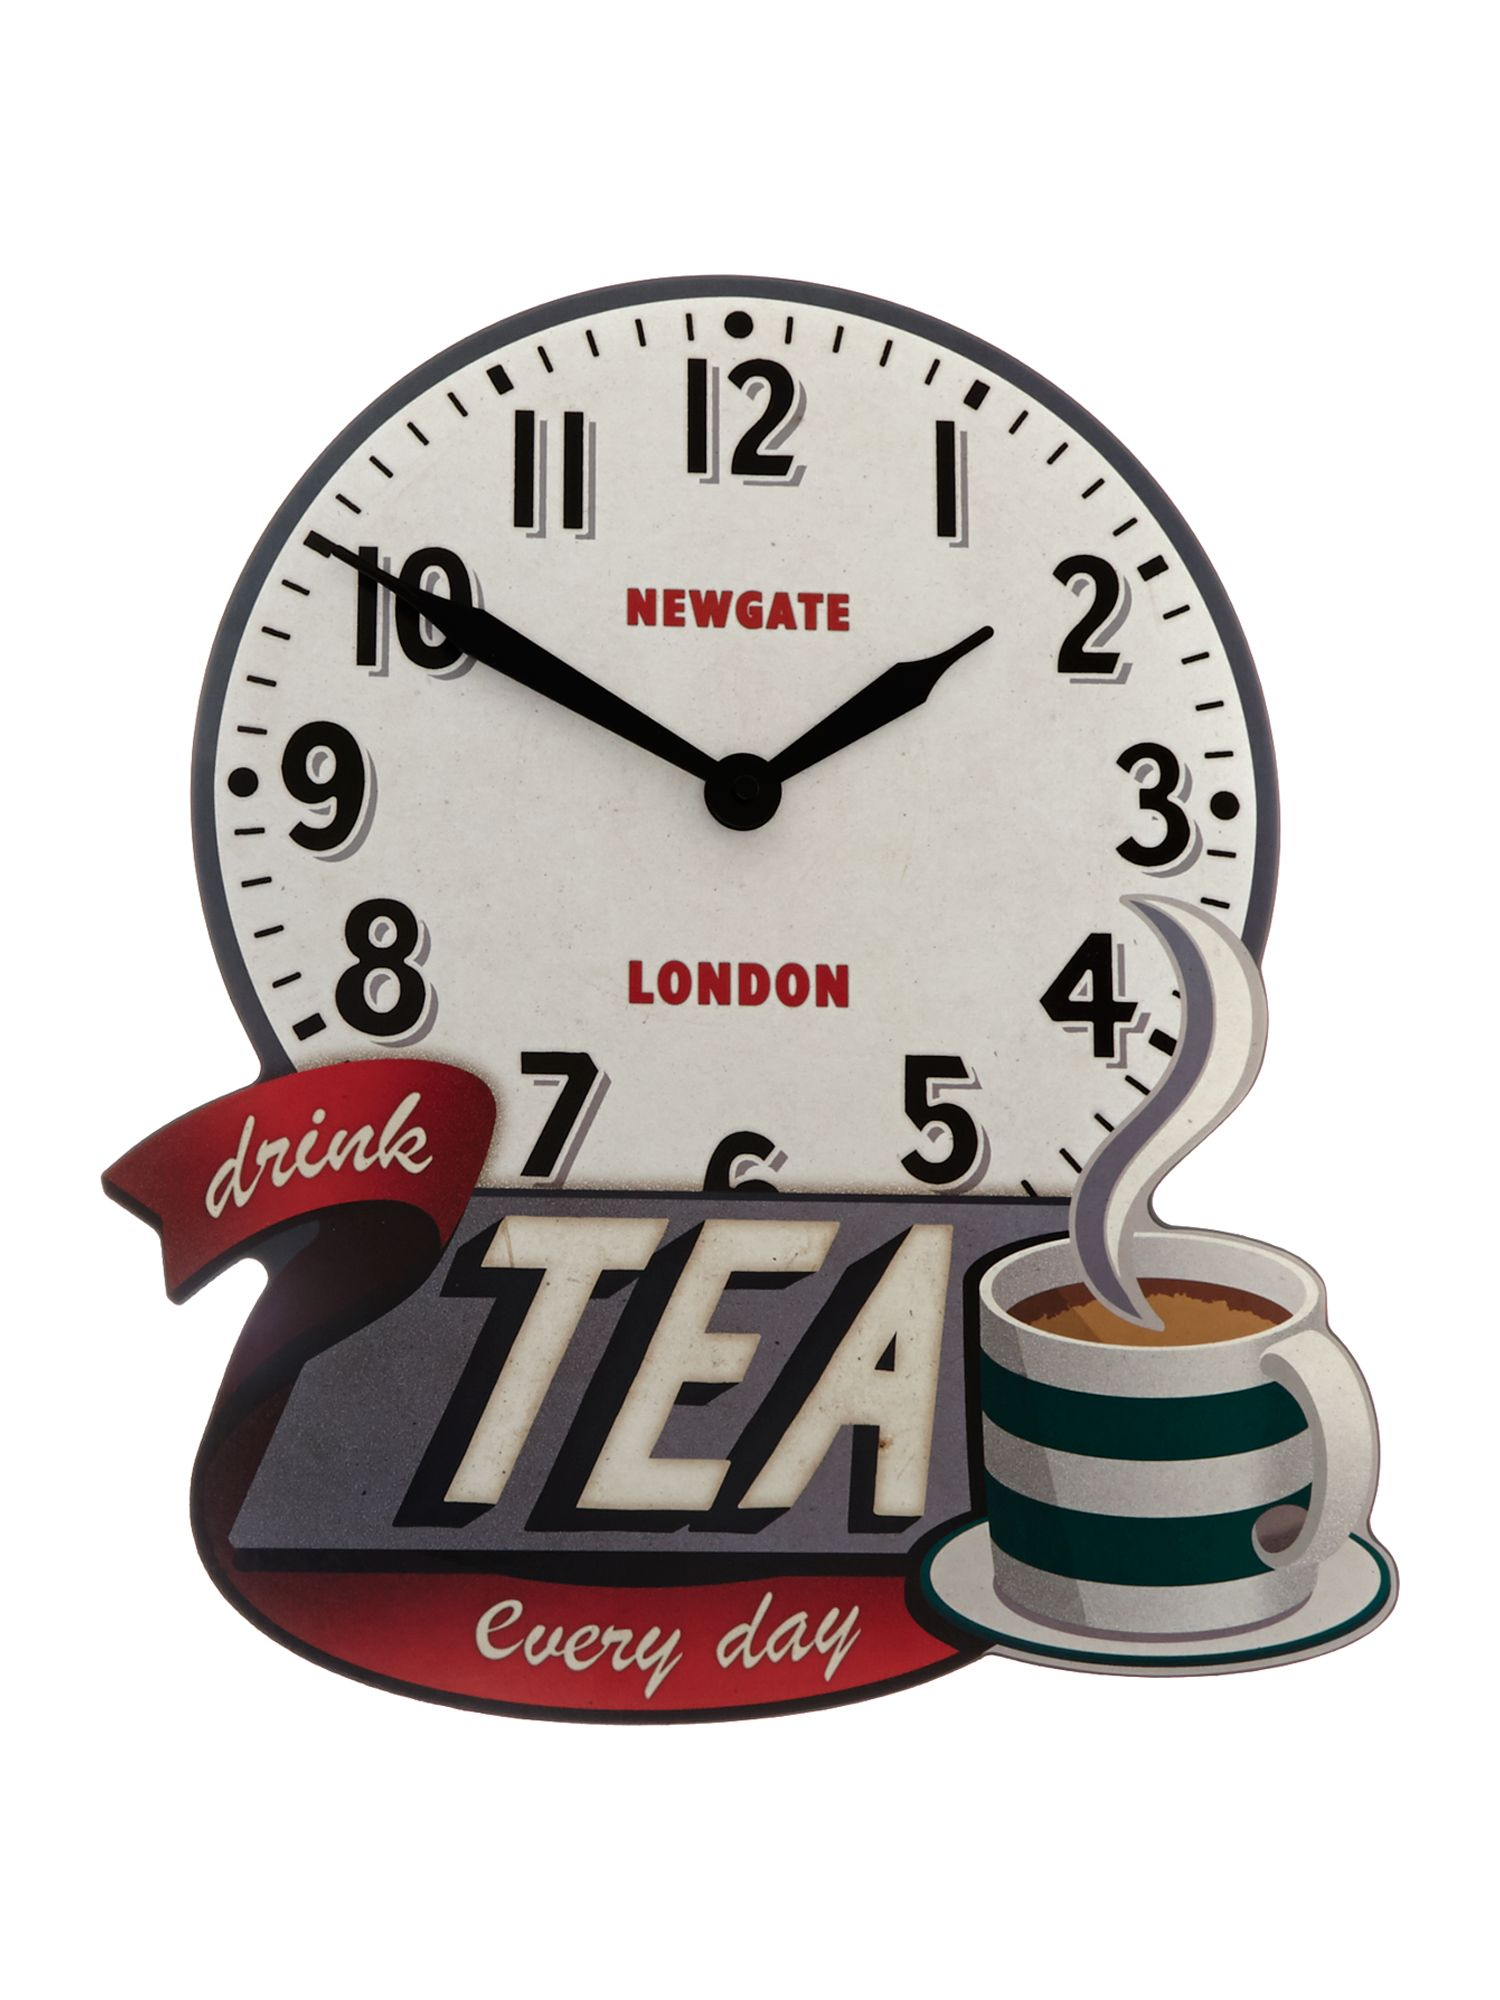 Drink tea wall clock